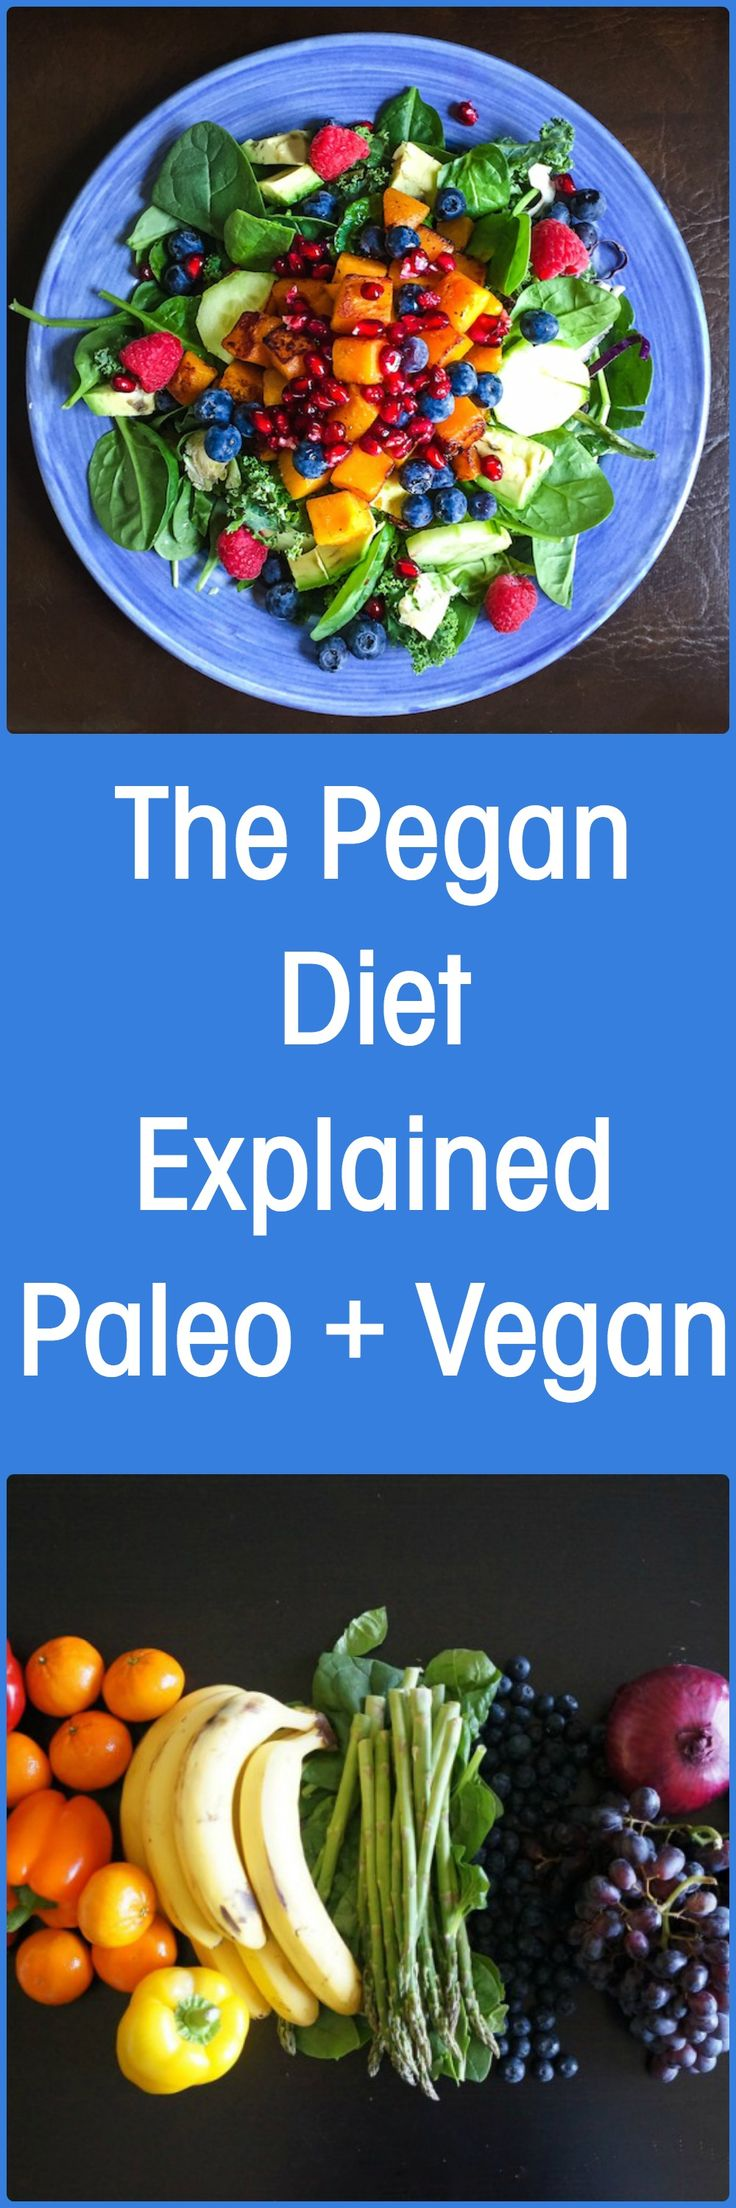 The Pegan Diet Explained = Paleo + Vegan (in my case, I eat mixture of Paleo & Mediterranean diet. I'm vegetarian, not vegan. BUT if I consume animal products such as dairy, must be free-range, cage-free, grass-fed. & fish must be wild. On holidays, I eat whatever I want (desserts, etc) but on daily basis I avoid processed foods & sugar. -Mari